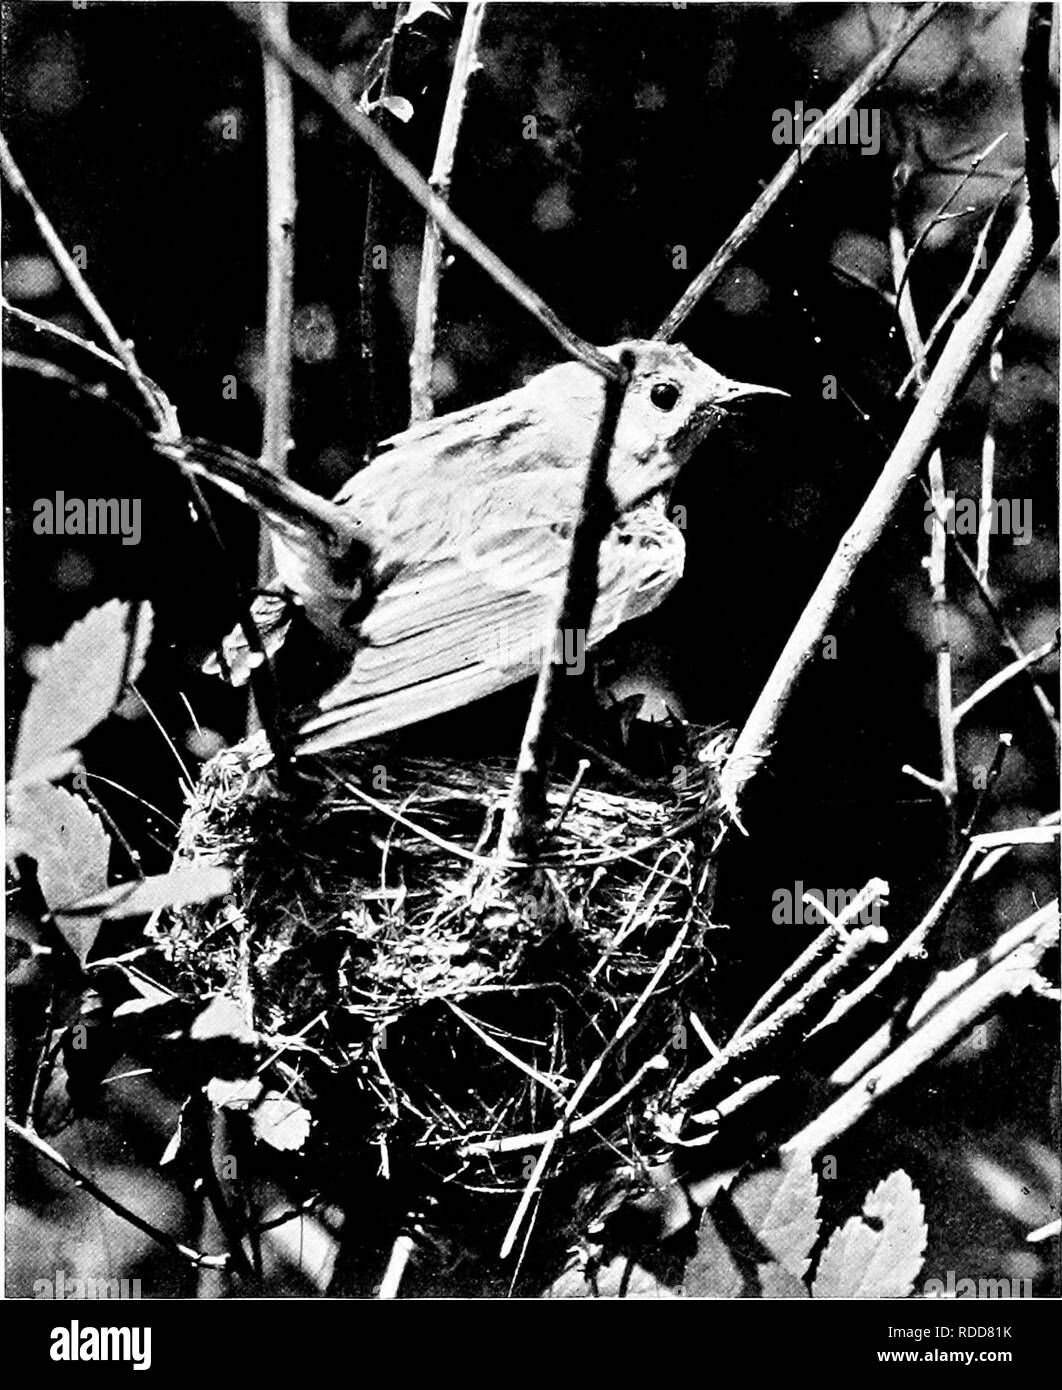 . The home life of wild birds; a new method of the study and photography of birds. Birds; Photography of birds. 14 Wild Birds. to work in the field or laboratory for weeks or months to attain a well-defined end, and that end he will attain, provided it can be compassed by intelligence, industry, and skill. Patience is the naturalist's stock in trade, and while no success ma)- come because of it alone, none can be assured without it. In the ten days or two weeks or more of life at the nest events move rap- idly and the question of time is important. Anj' interruptions are therefore opportunitie - Stock Image